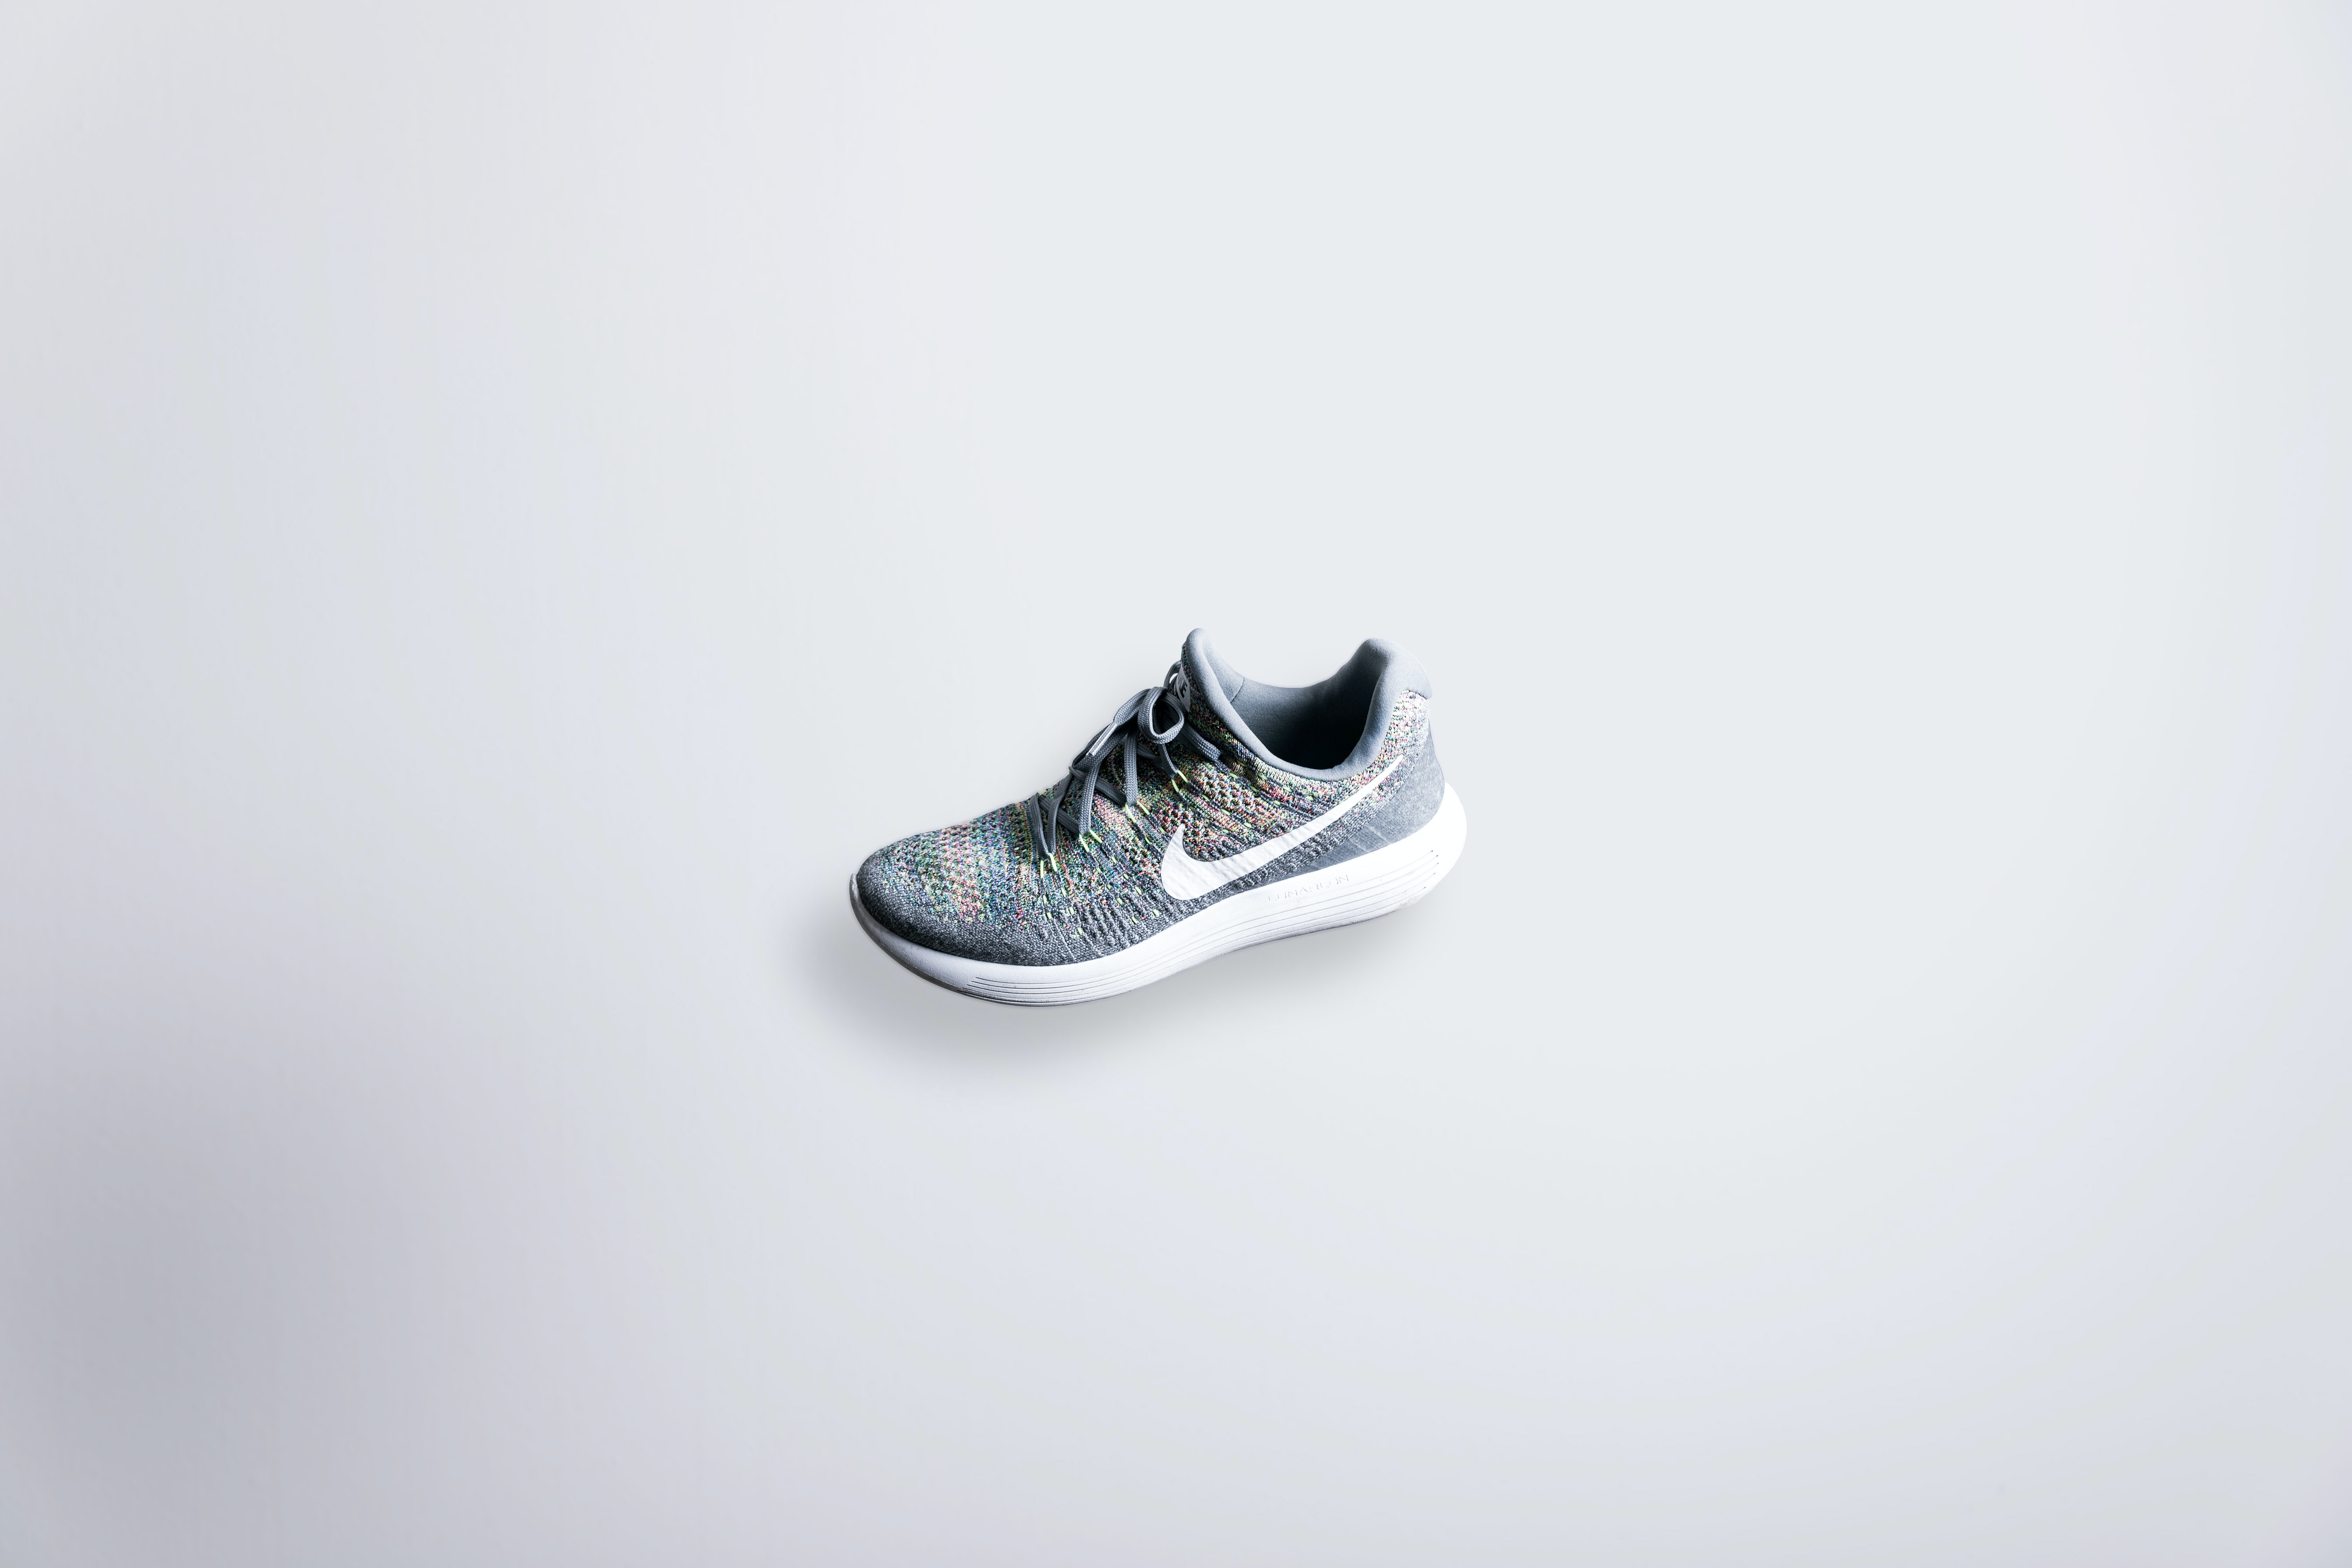 unpaired gray and white Nike Flyknit shoe